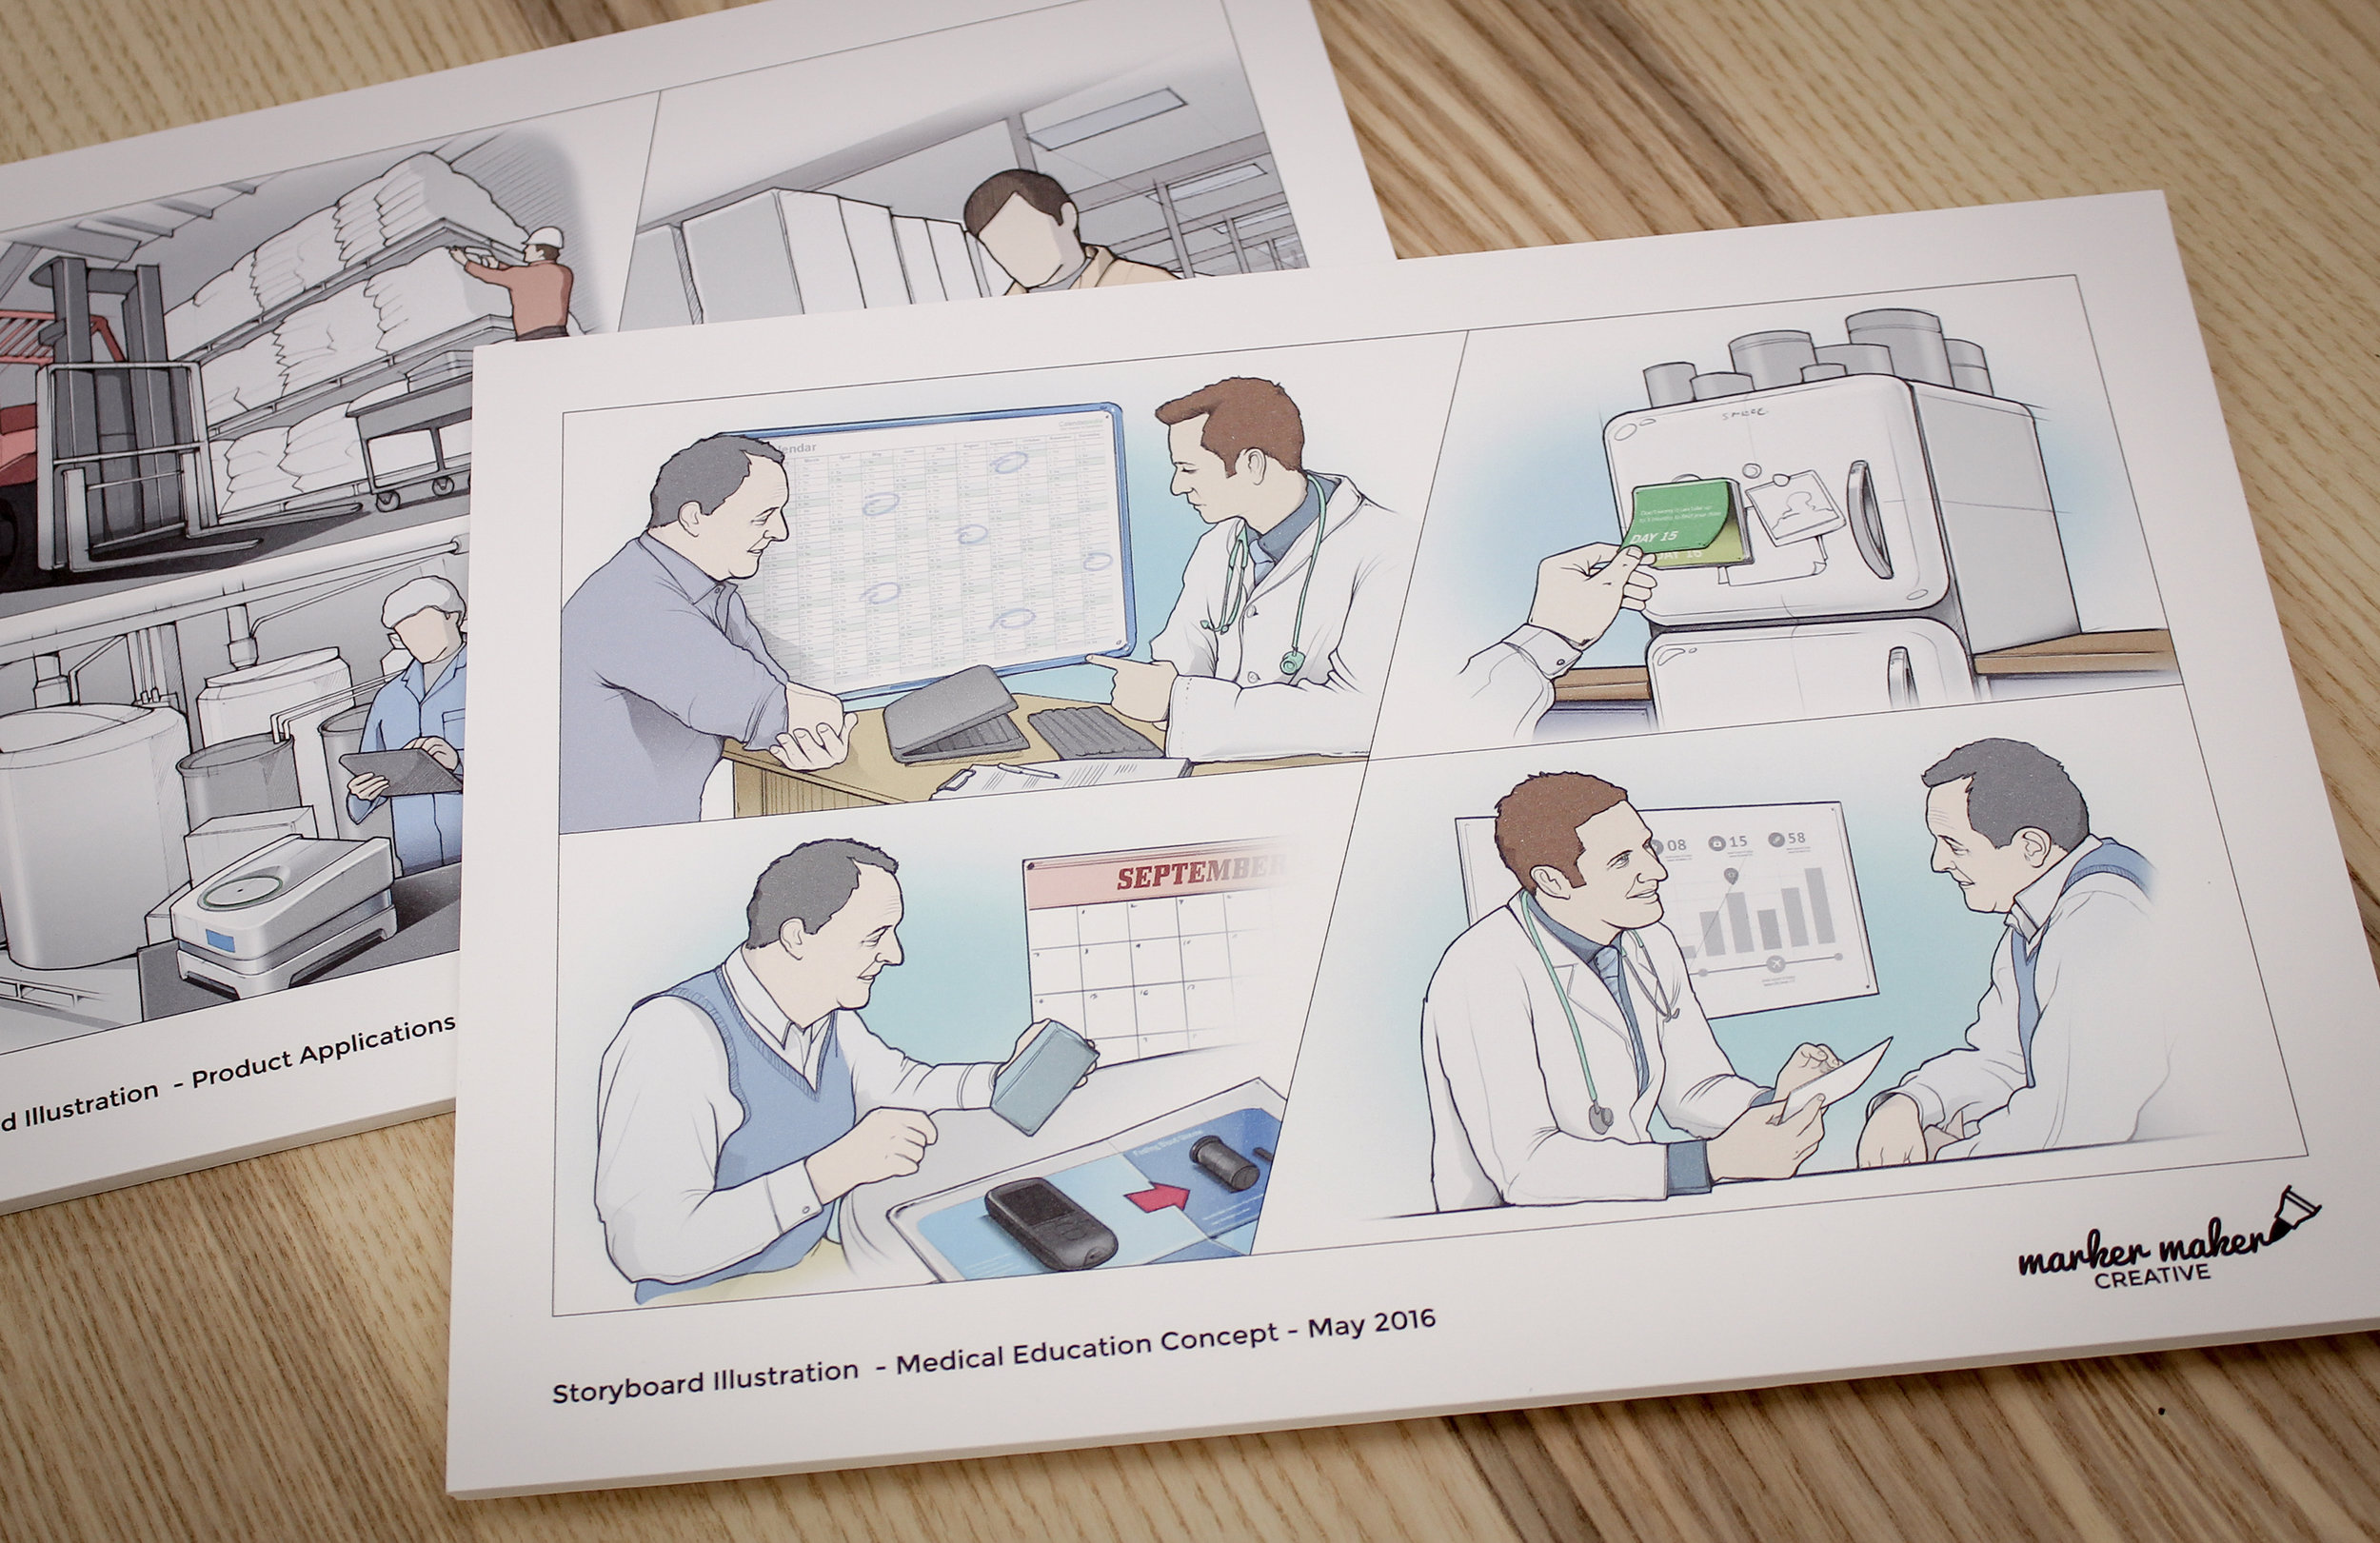 Storyboard illustration examples - used to communicate a product user journey